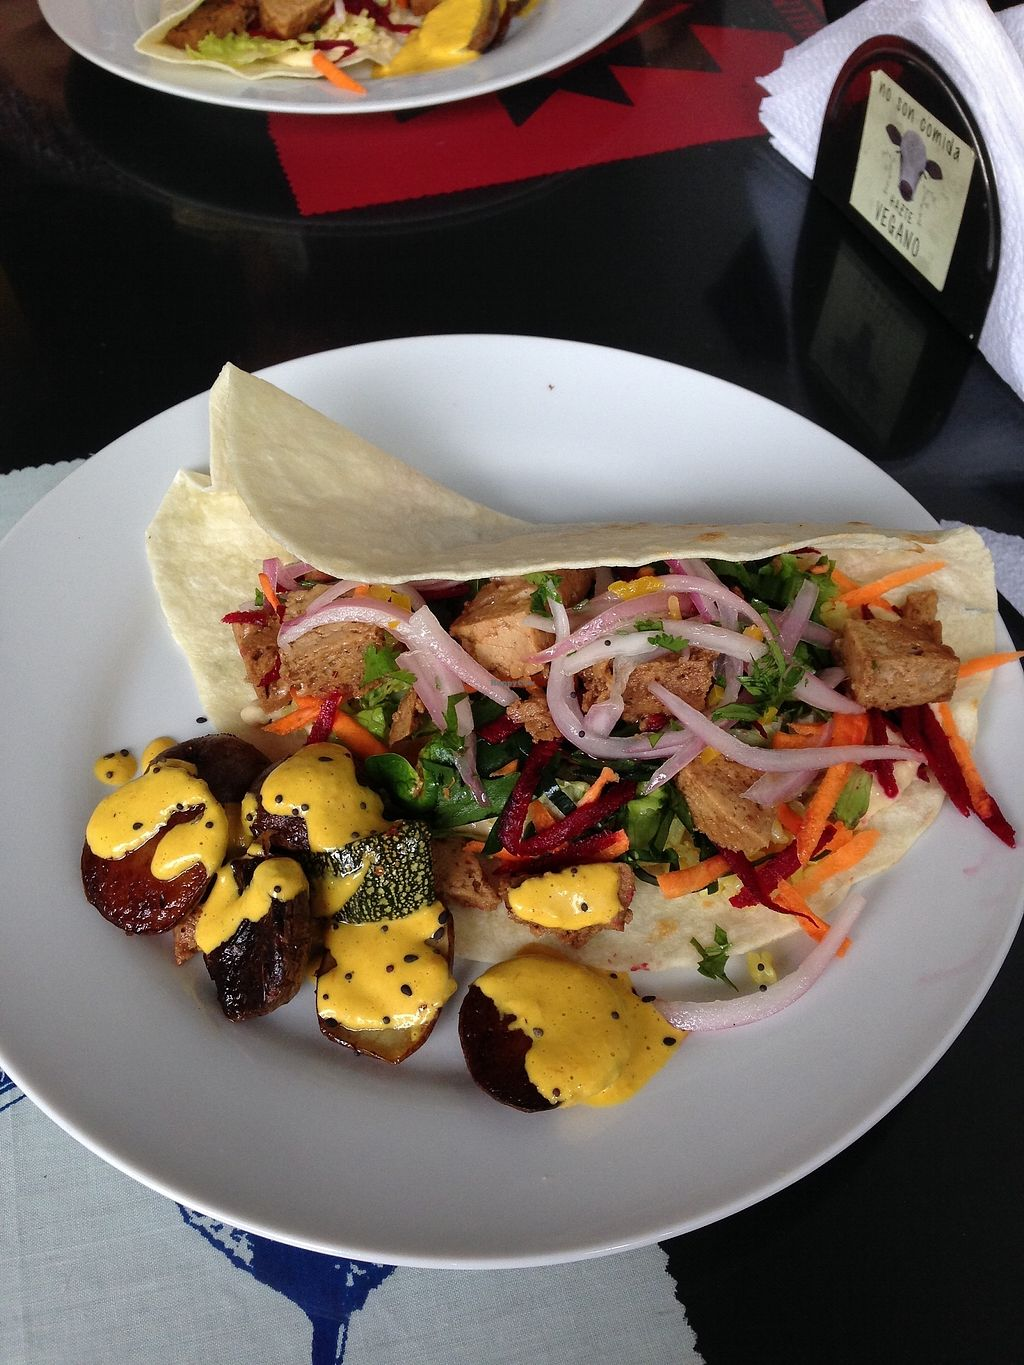 "Photo of Sinfonia Vegana  by <a href=""/members/profile/CamiloDolorier"">CamiloDolorier</a> <br/>taco with rice, seitan, hummus and veggies. potatoes and zucchini with huancaina sauce. appetizer was stuffed avocado (no picture!) <br/> September 4, 2017  - <a href='/contact/abuse/image/70859/300841'>Report</a>"